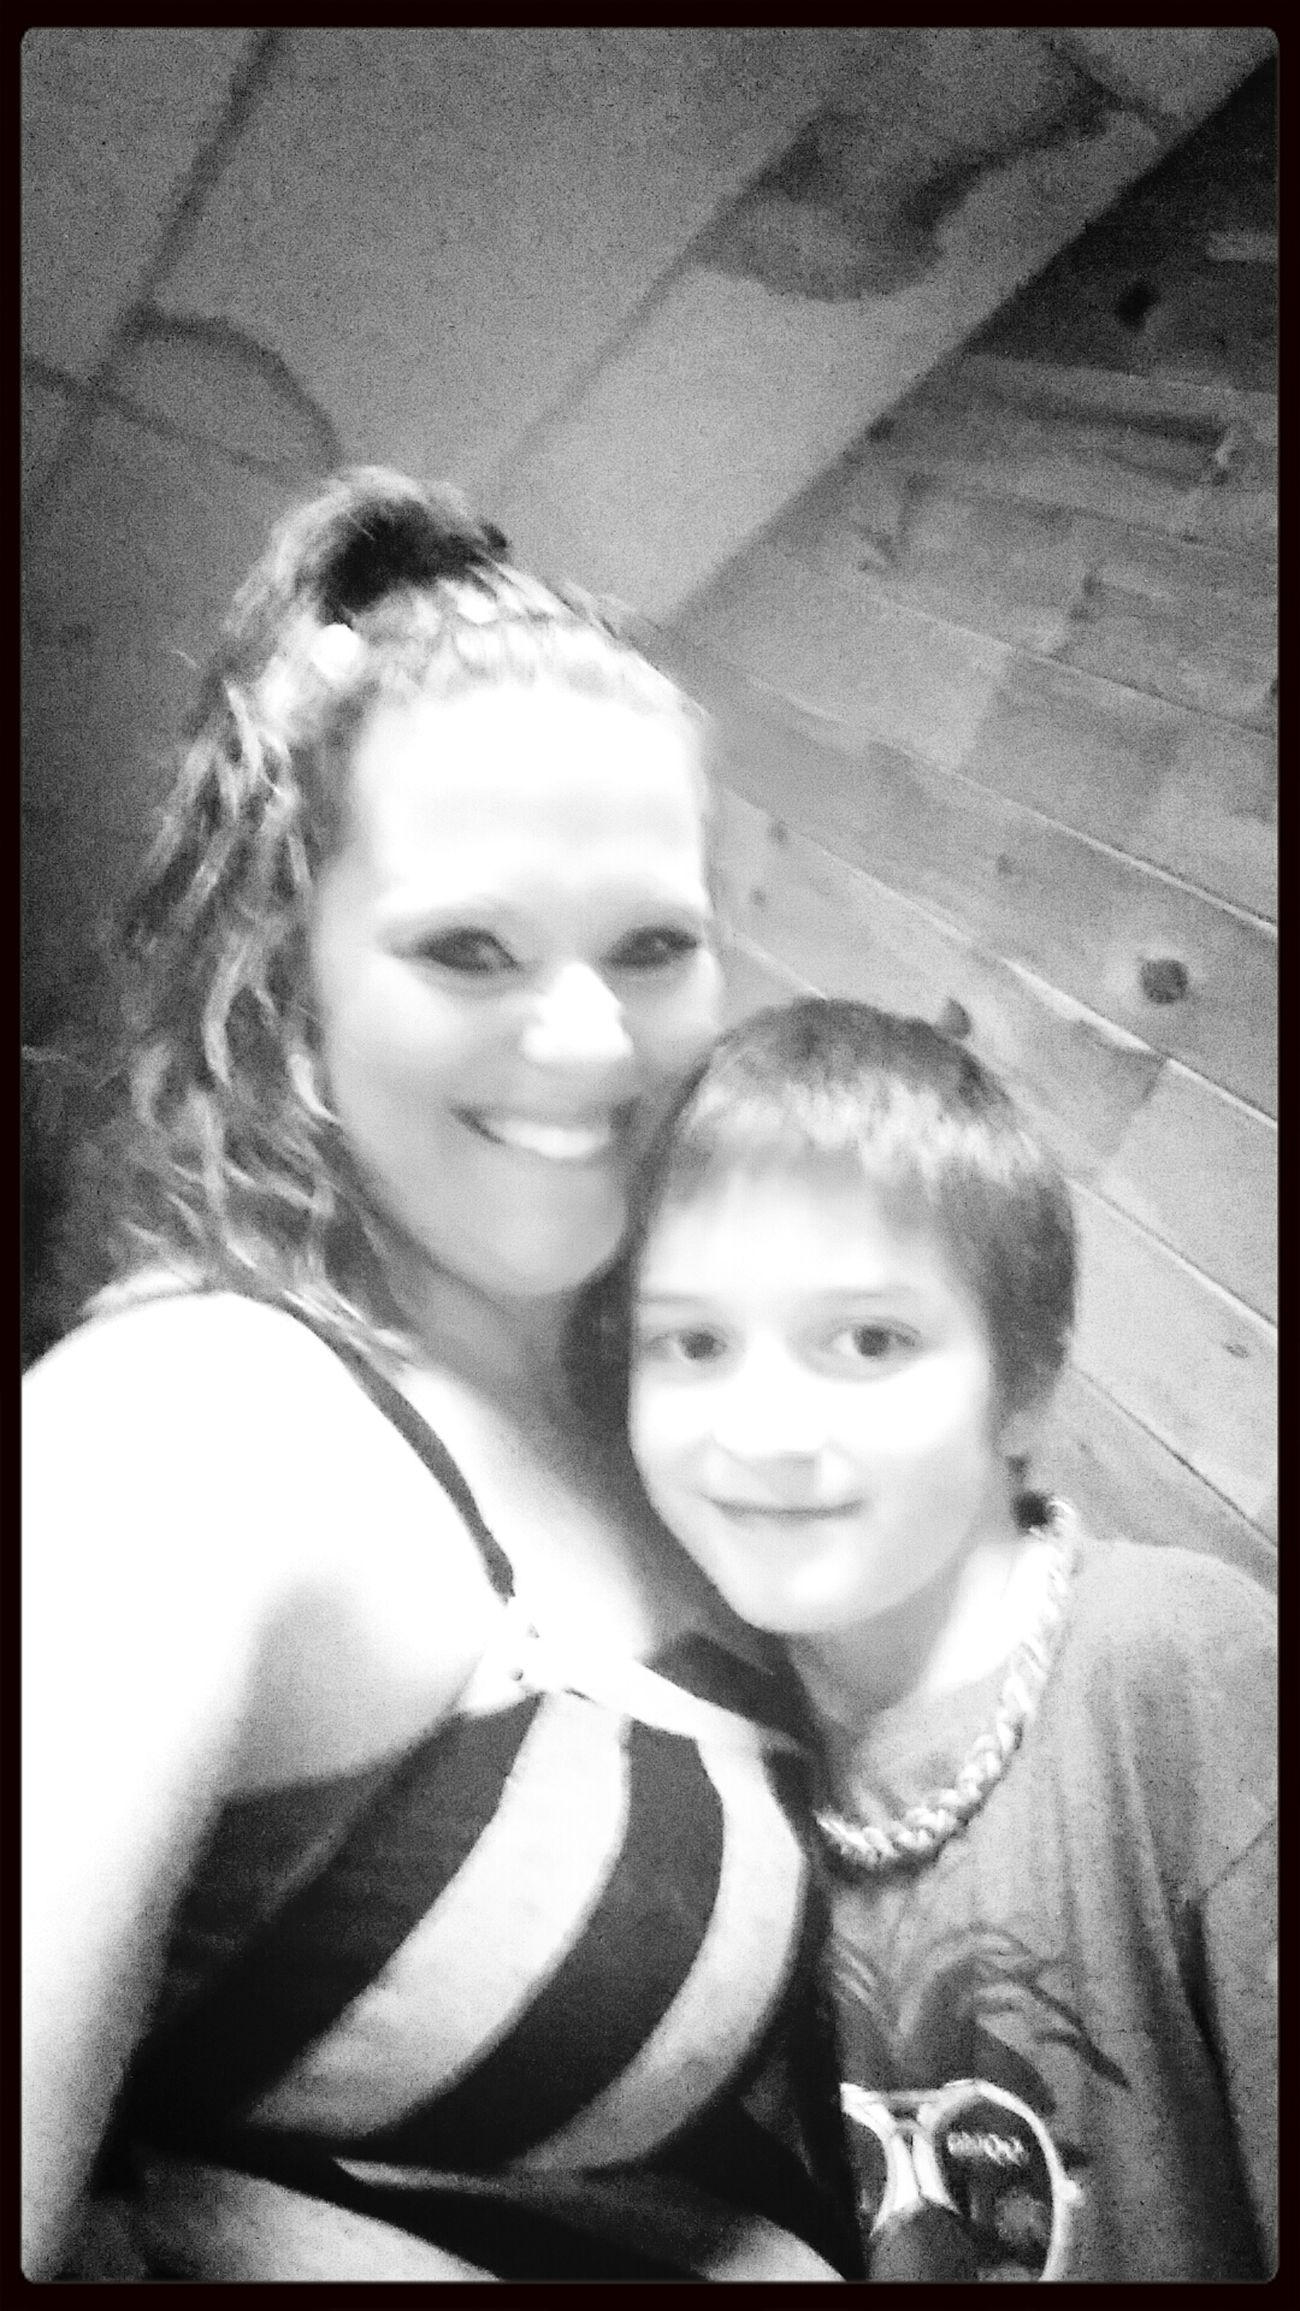 me and my handsome oldest